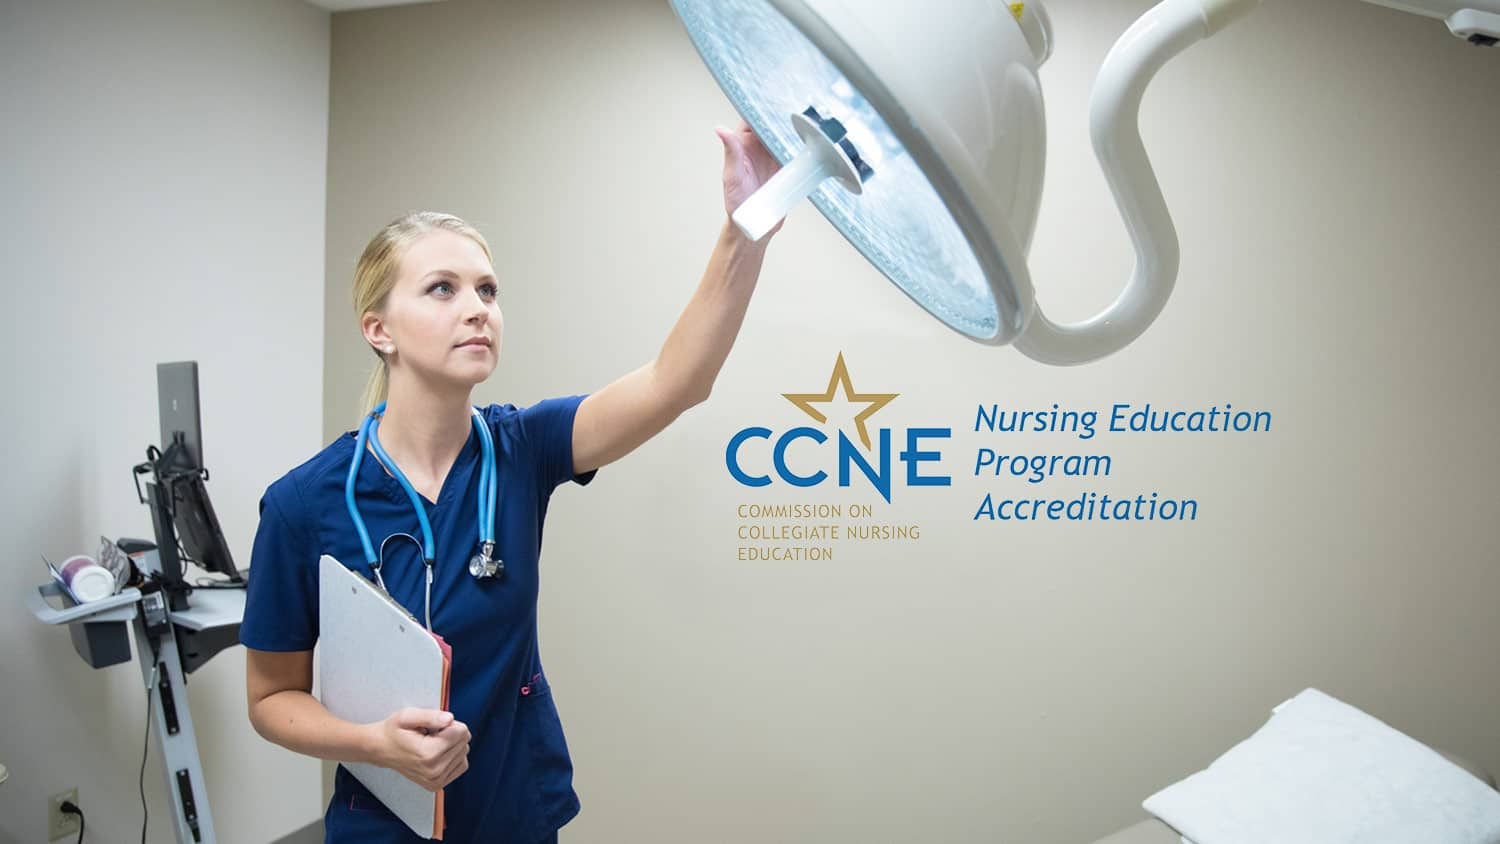 A nurse adjusts equipment: Be equipped to excel through Regent University's RN to B.S. in Nursing degree program.